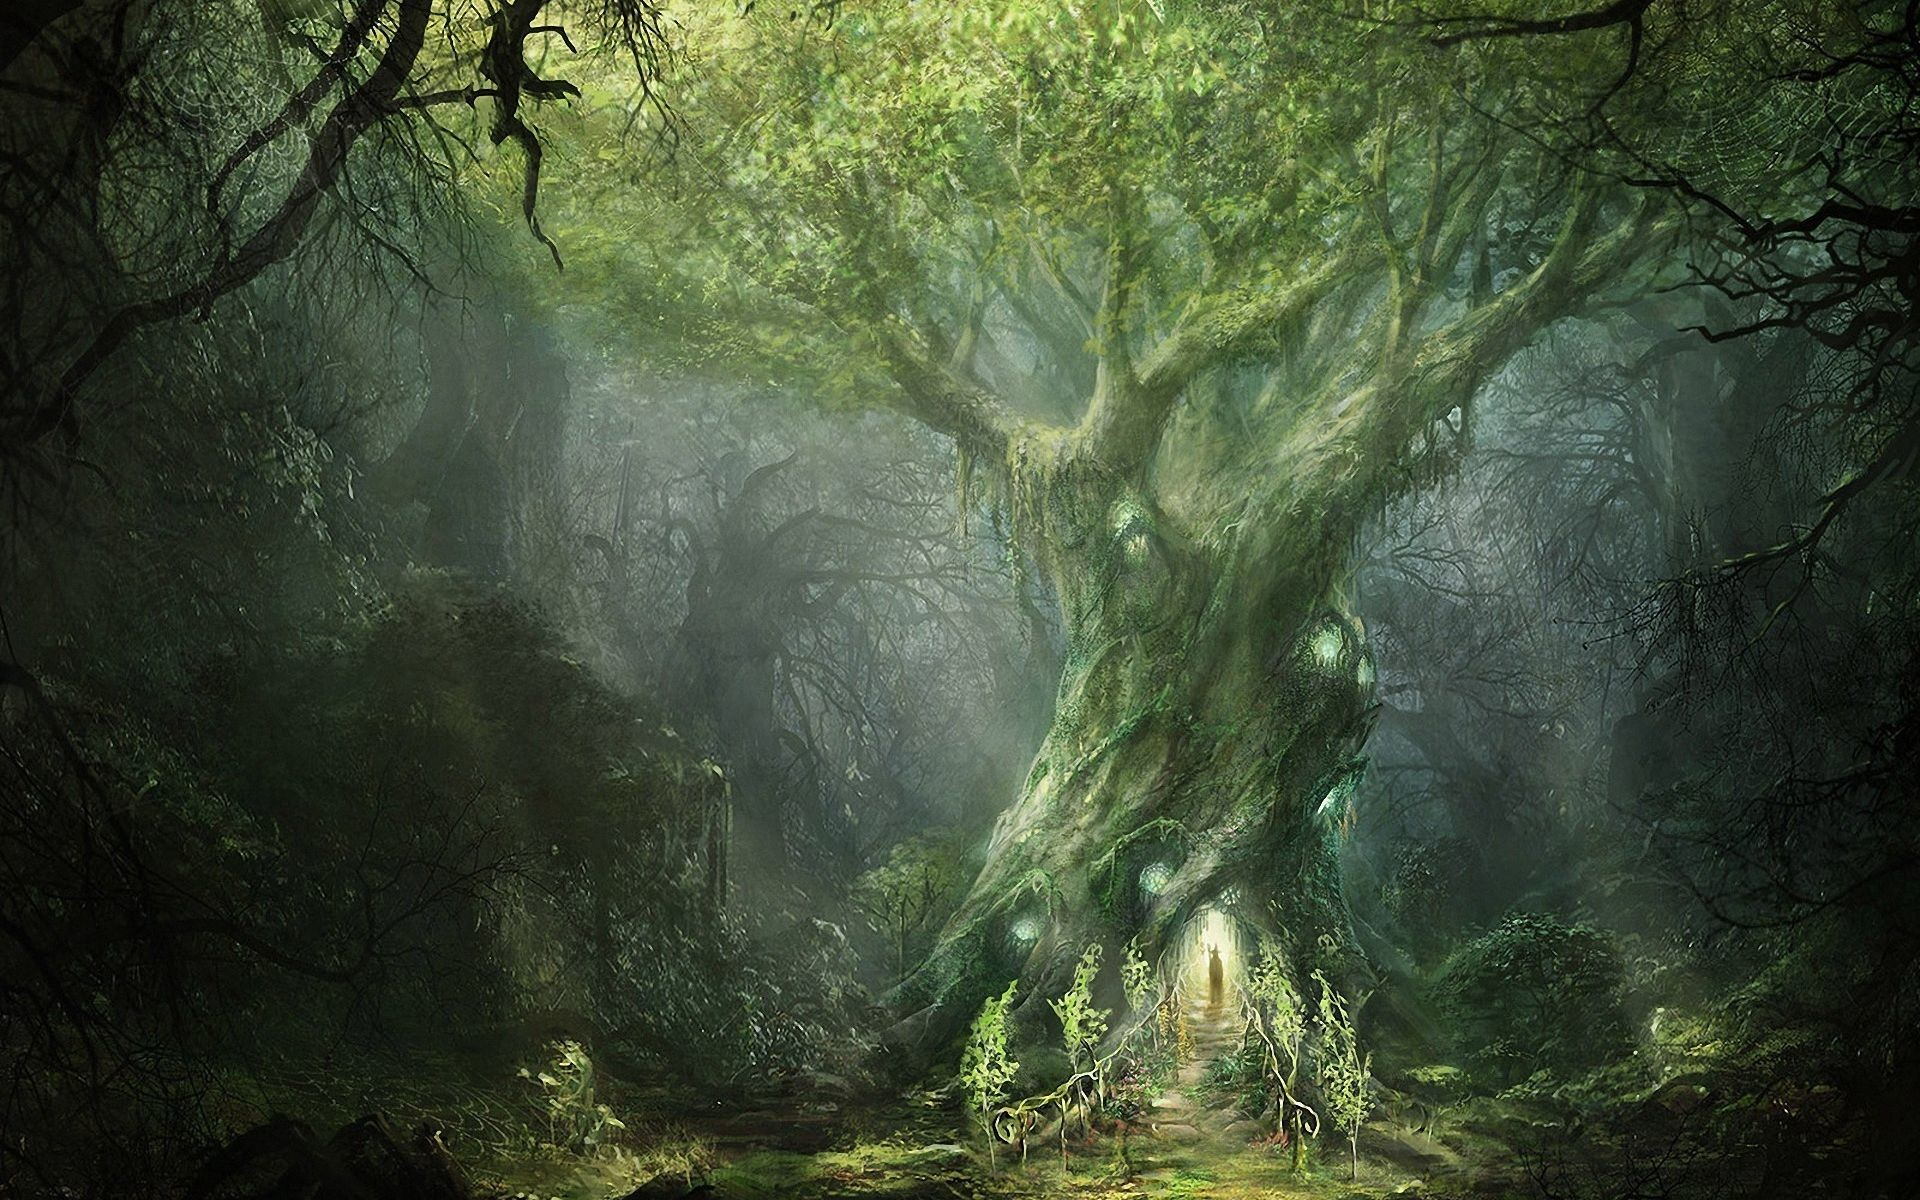 1920x1200 Fantasy Forest big twisted tree with surrounding light |  TomorrowlandInspAration | Pinterest | Fantasy forest, Wallpaper backgrounds  and Wallpaper